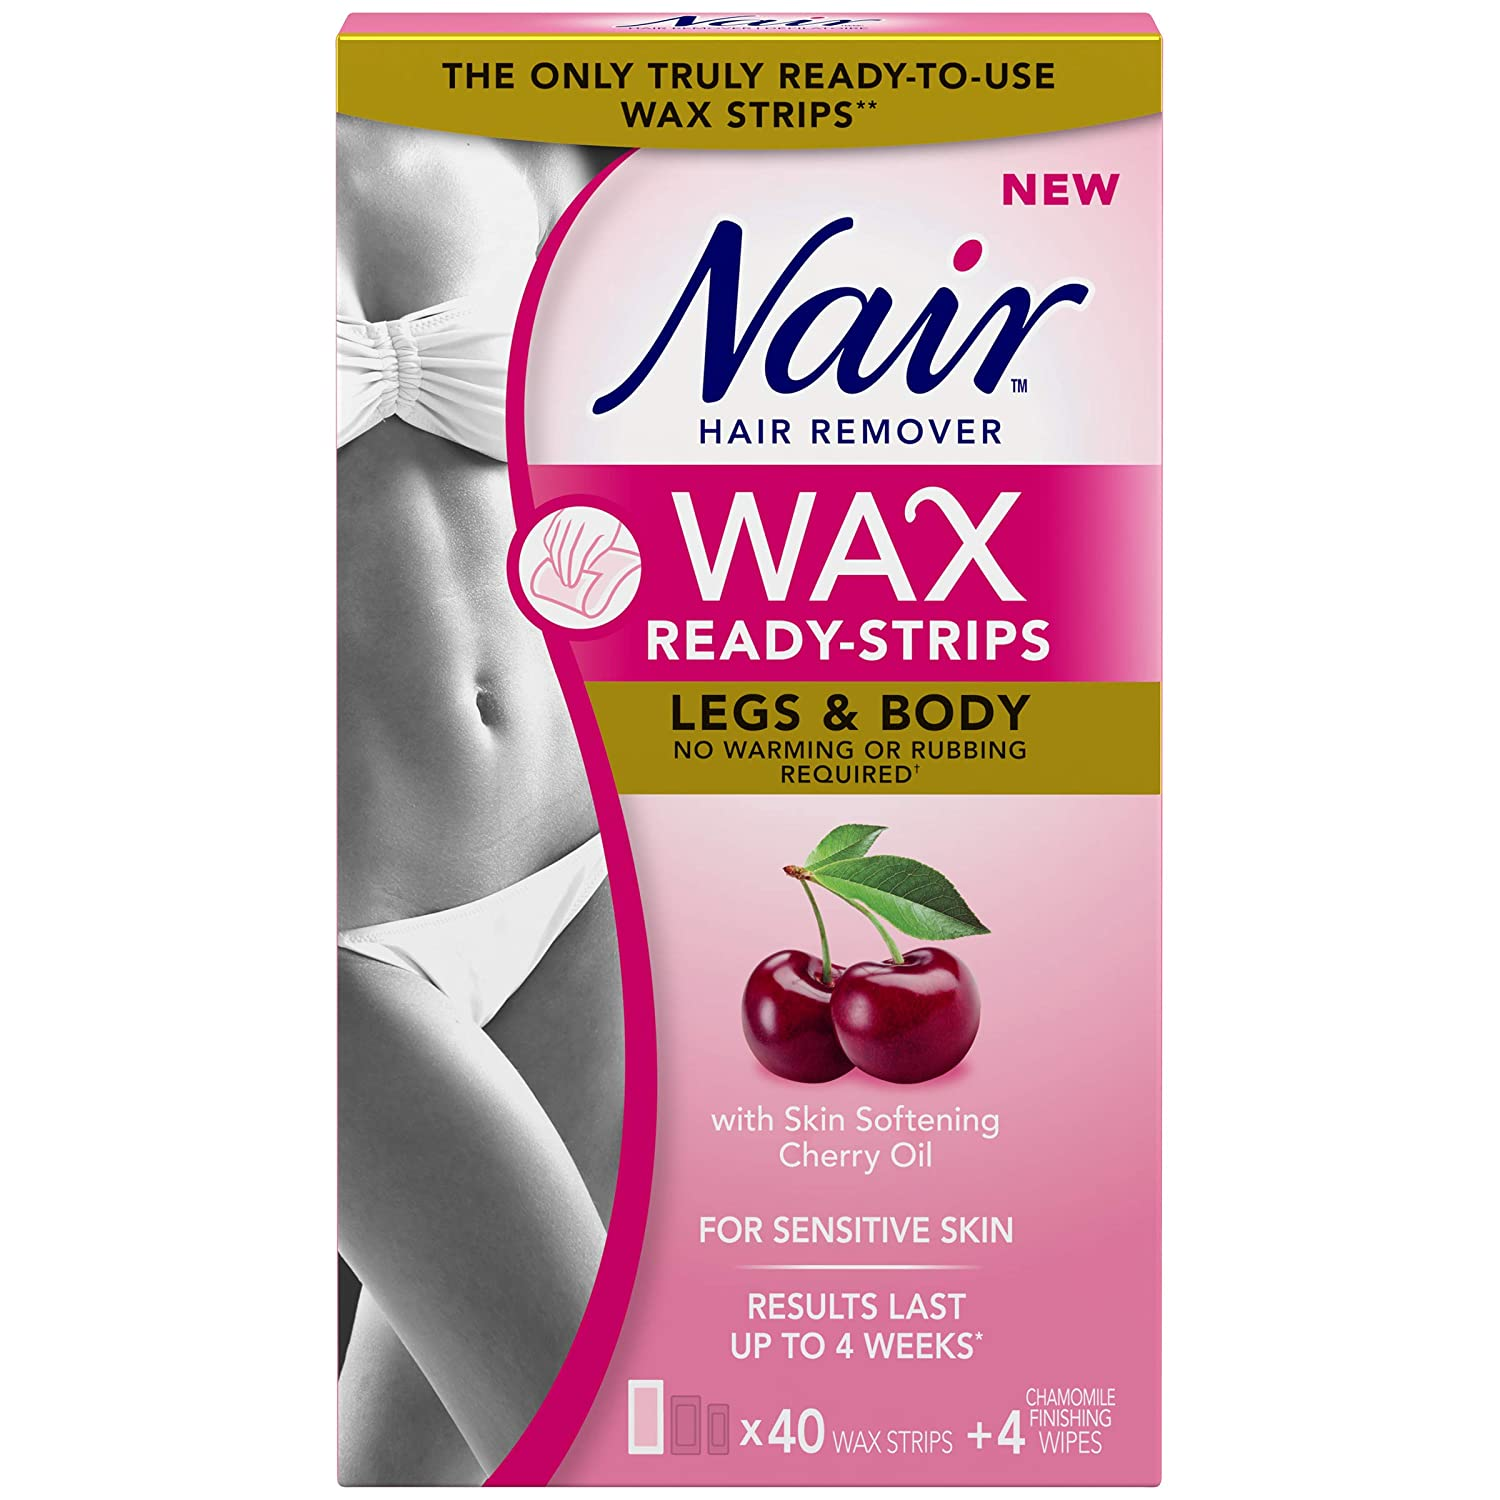 Nair Wax Ready Strips for Legs & Body with Skin Softening Cherry Oil, 40 Strips + 4 Finishing Wipes Church & Dwight